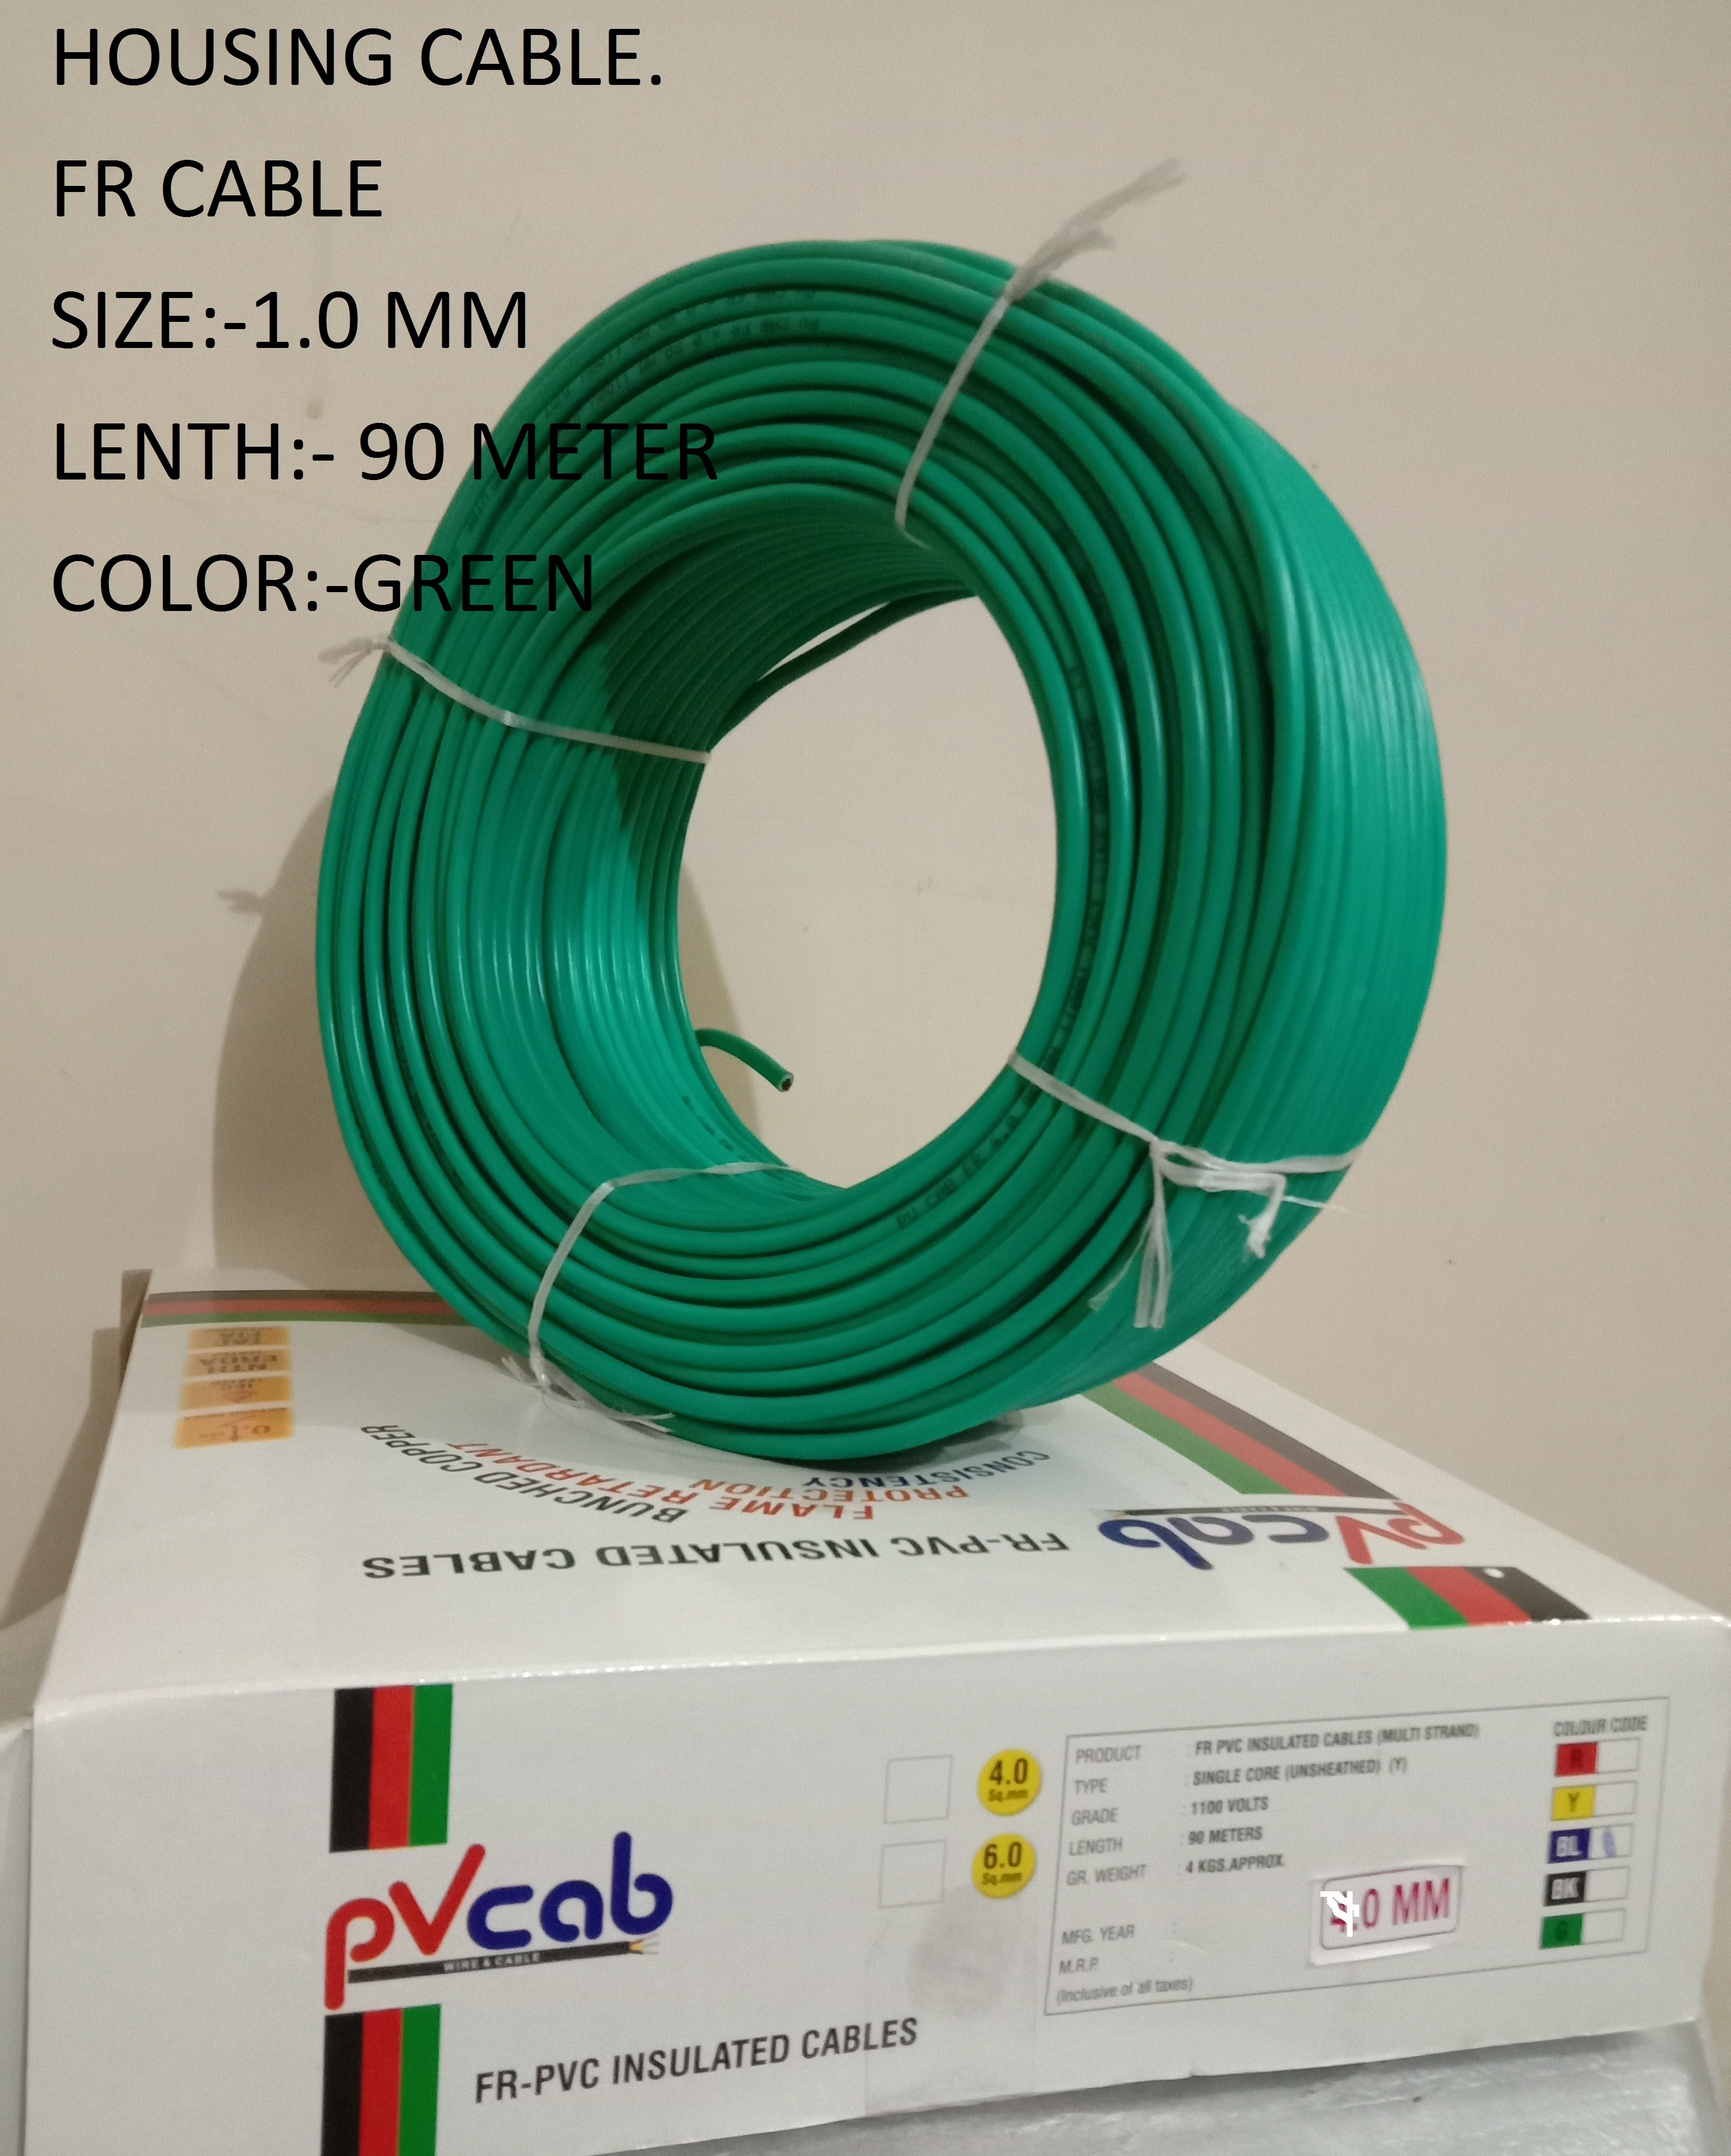 FLEXIBLE HOUSING CABLE HW 1.00 BLACK, GREEN, YELLOW, RED